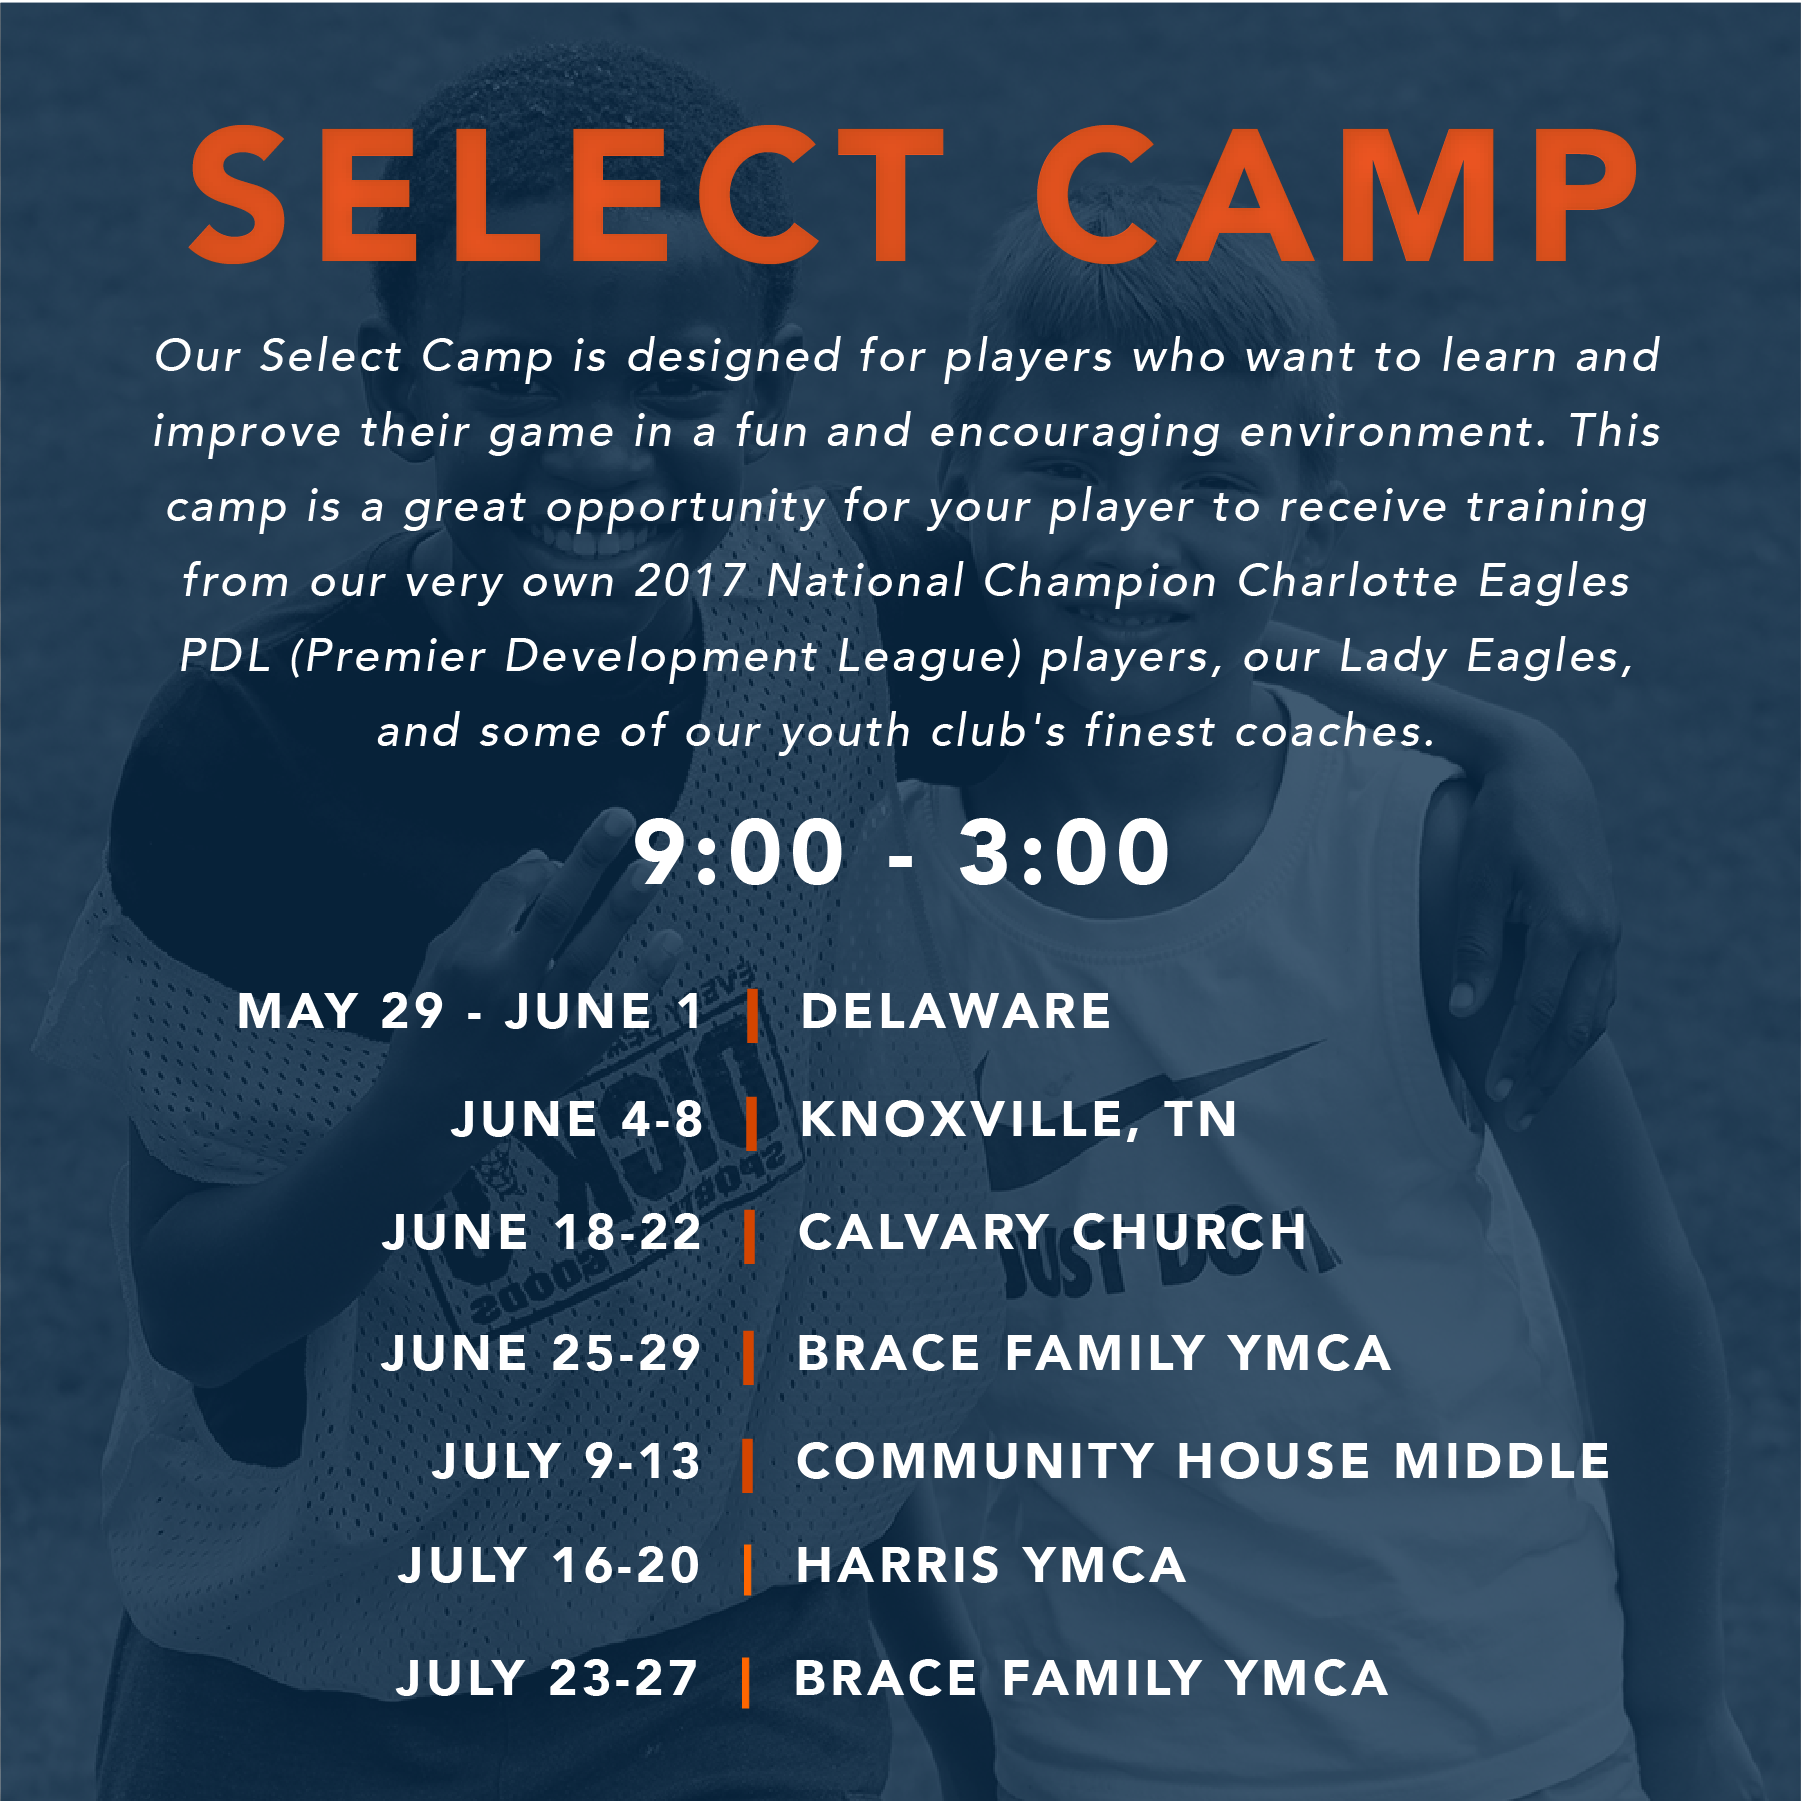 SELECT CAMP - 6 HOUR DAY CAMP